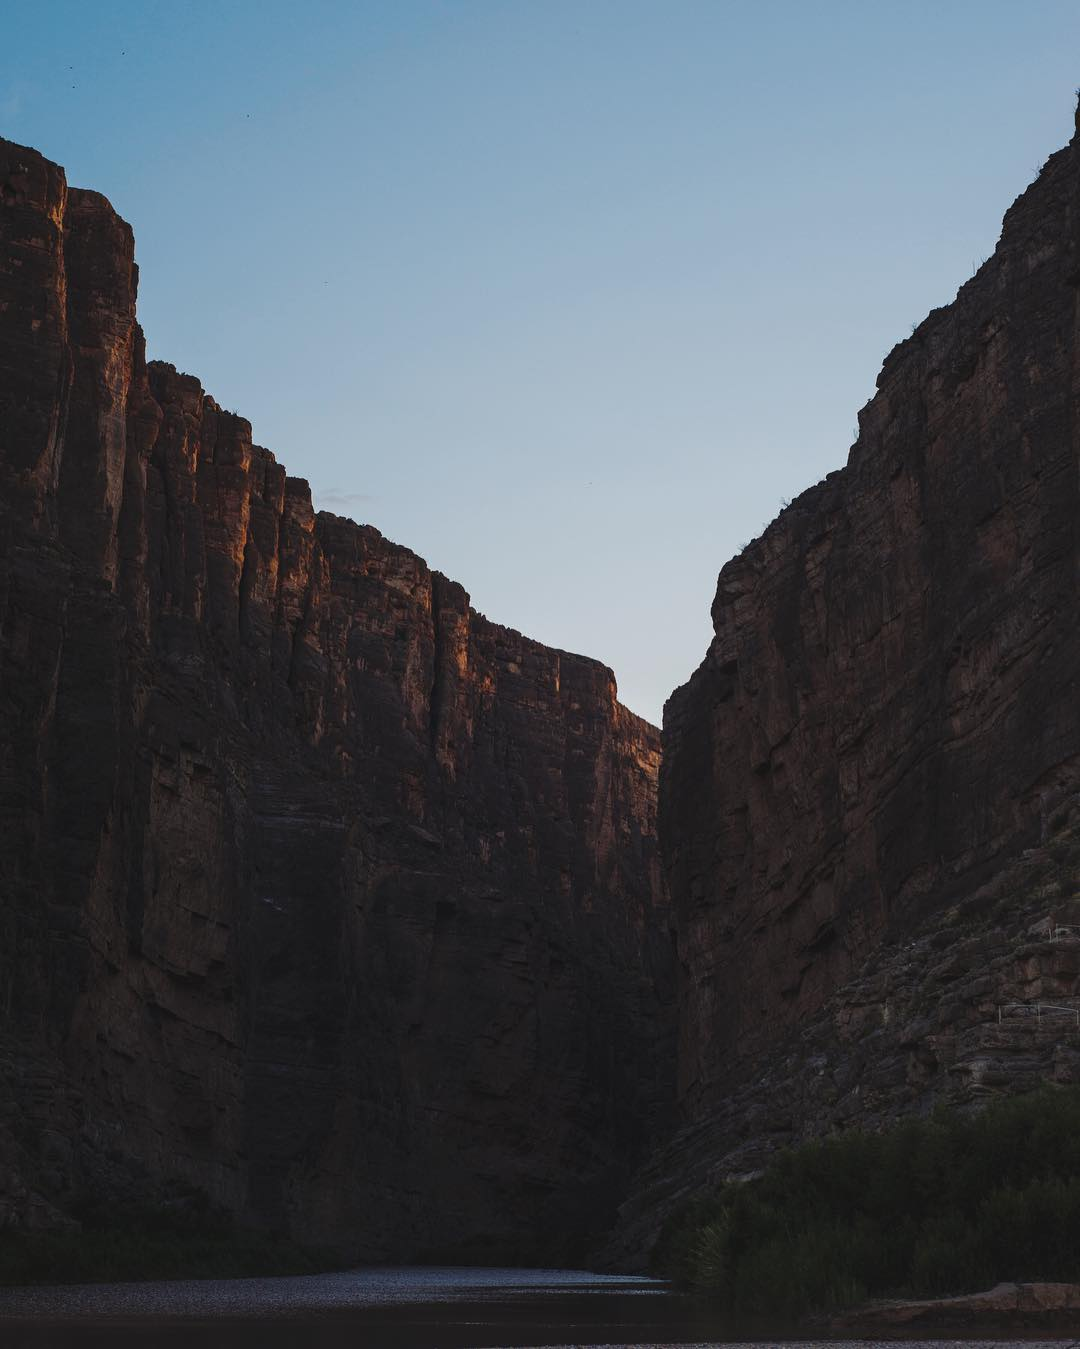 Last light of day trickles down Santa Elena Canyon on the border with our neighbors in Mexico. Lawrence took this shot in @bigbendnps with his trusty Peak gear. #findyourpeak